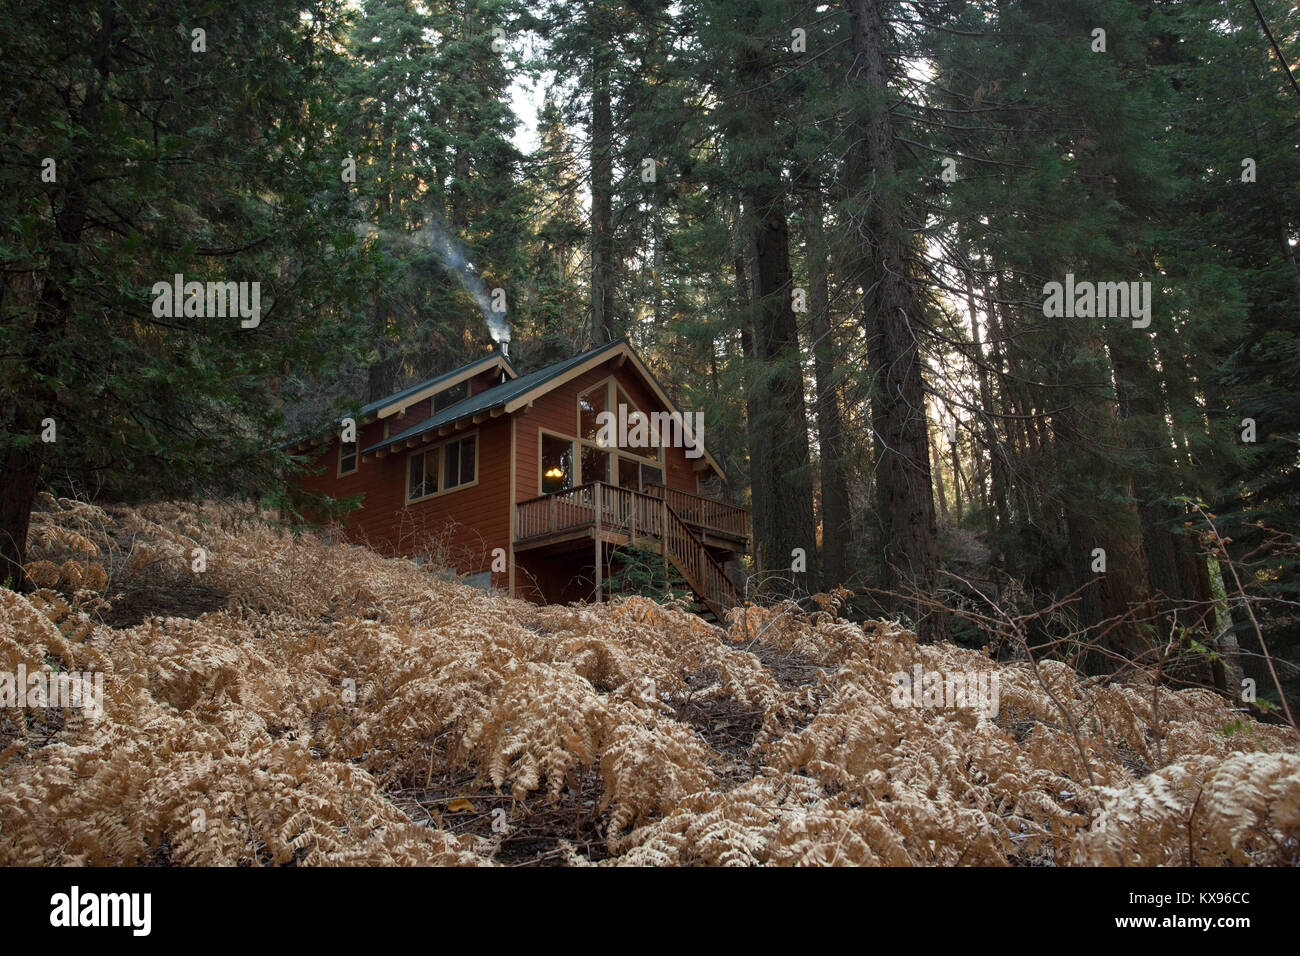 Cozy cabin in the forest at Sequioa Crest, California - Stock Image